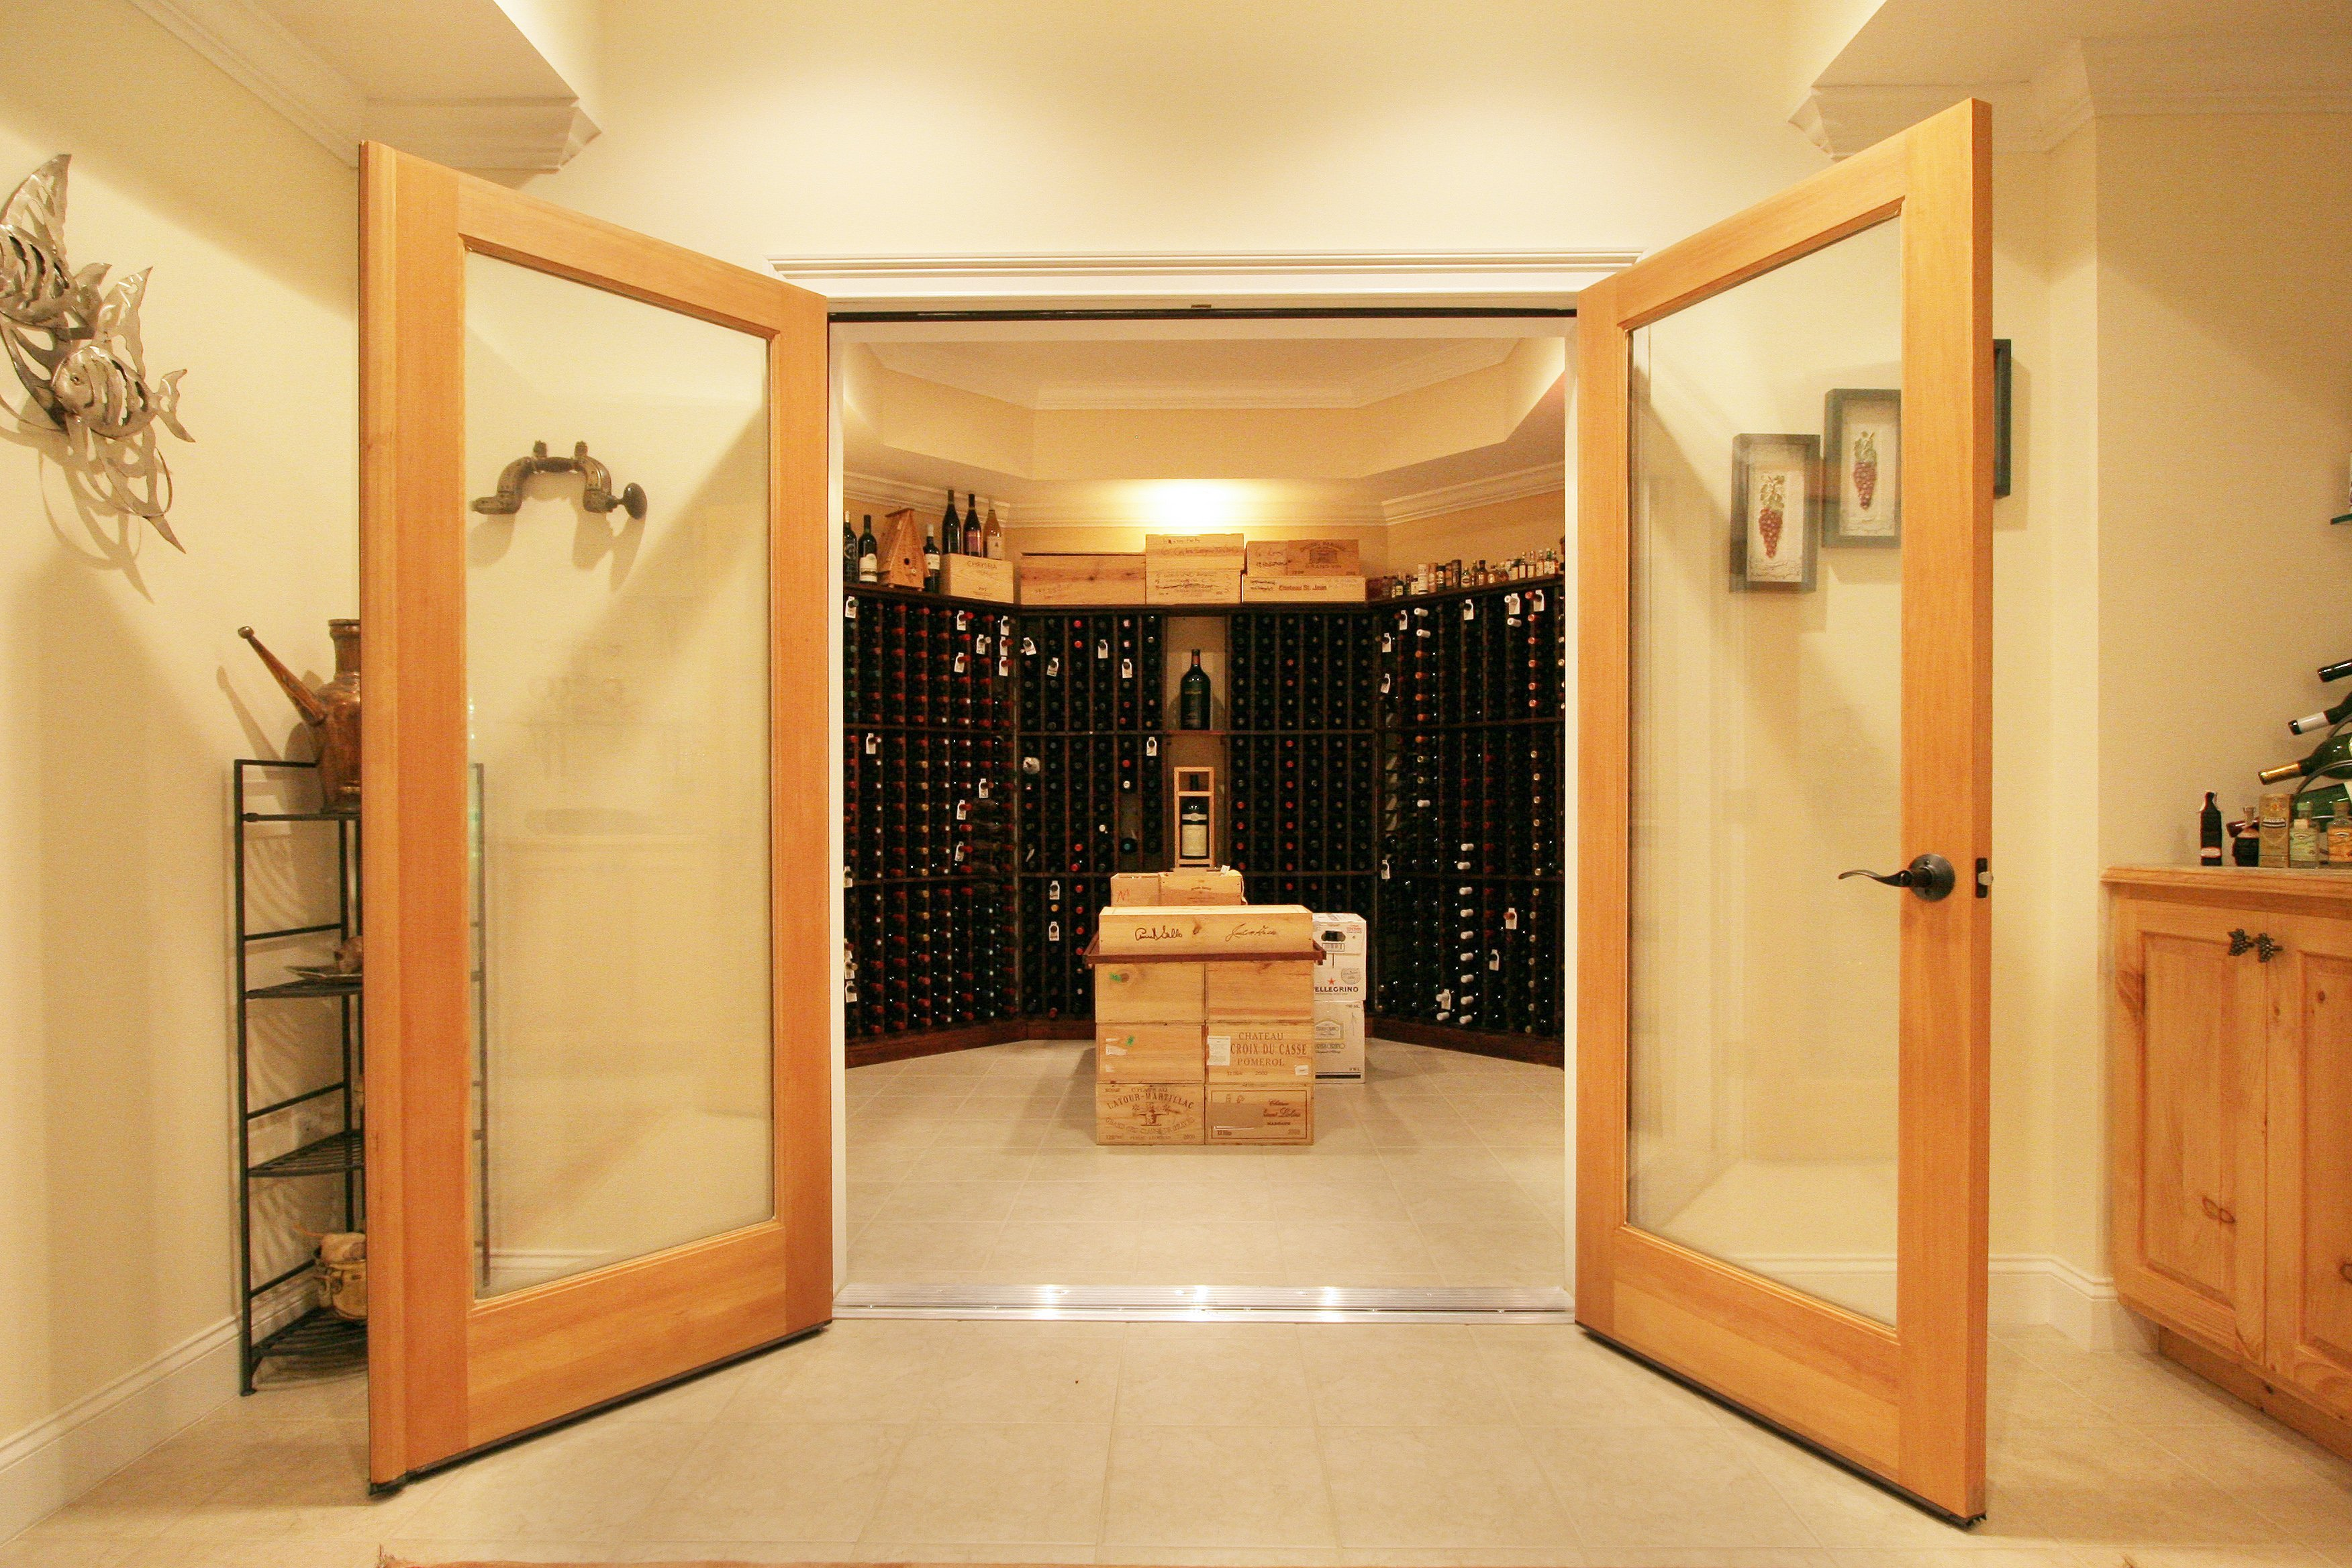 general contractor wine room, constructed by SIP Building Solutions - Westport, Fairfield, Stamford, Greenwich, Danbury CT